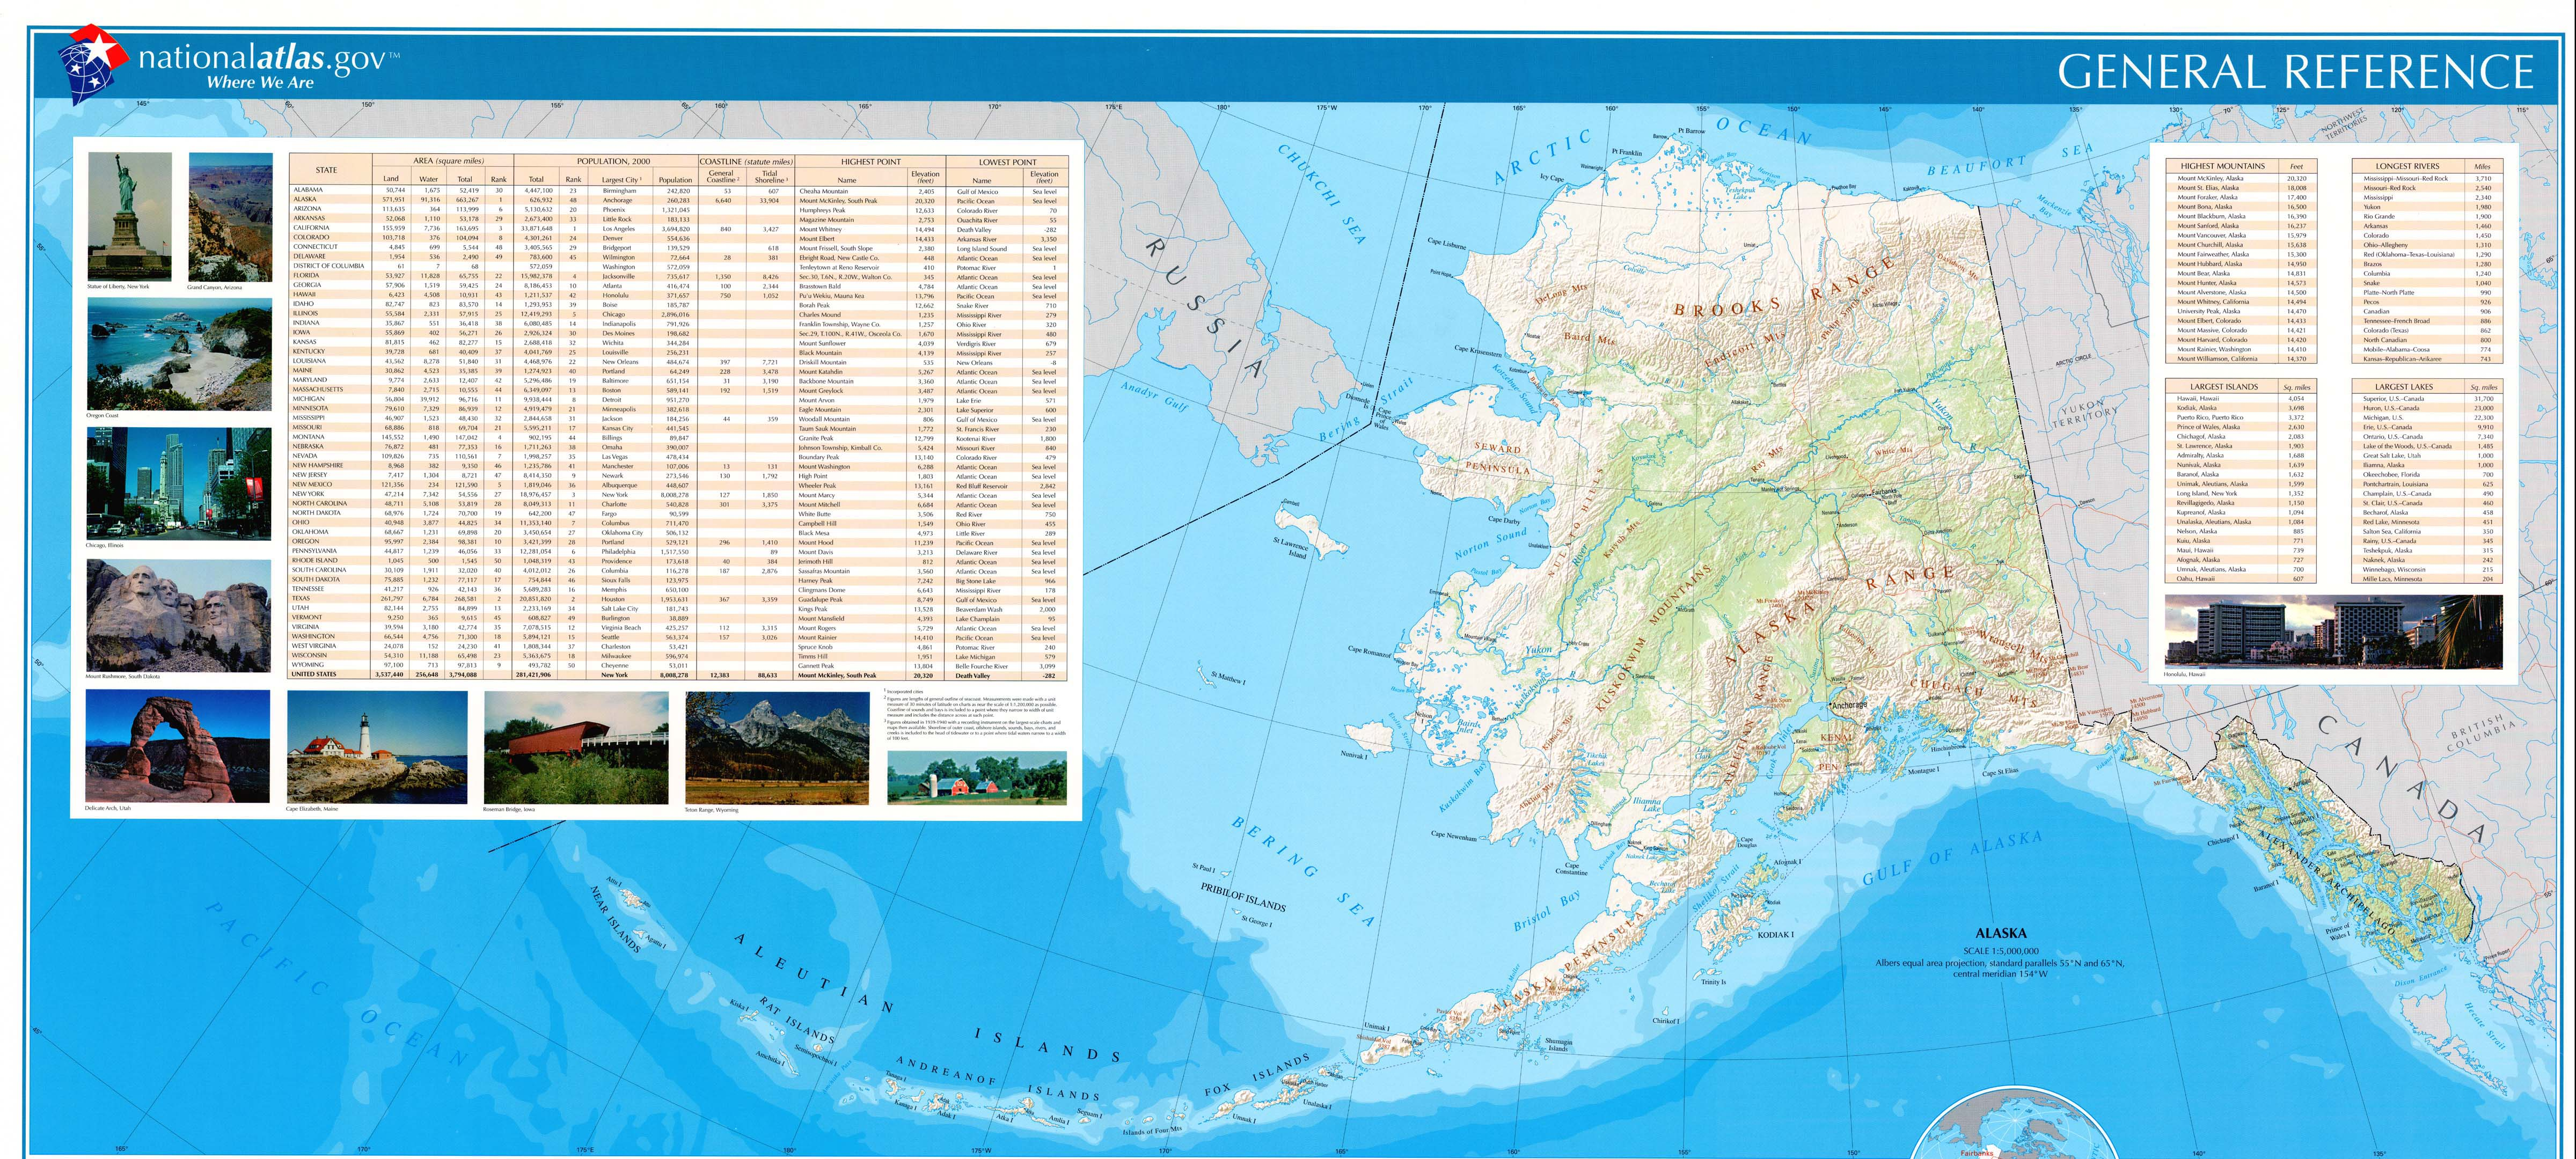 Alaska Tourist Attractions Juneau Fairbanks State Parks – Alaska Tourist Map